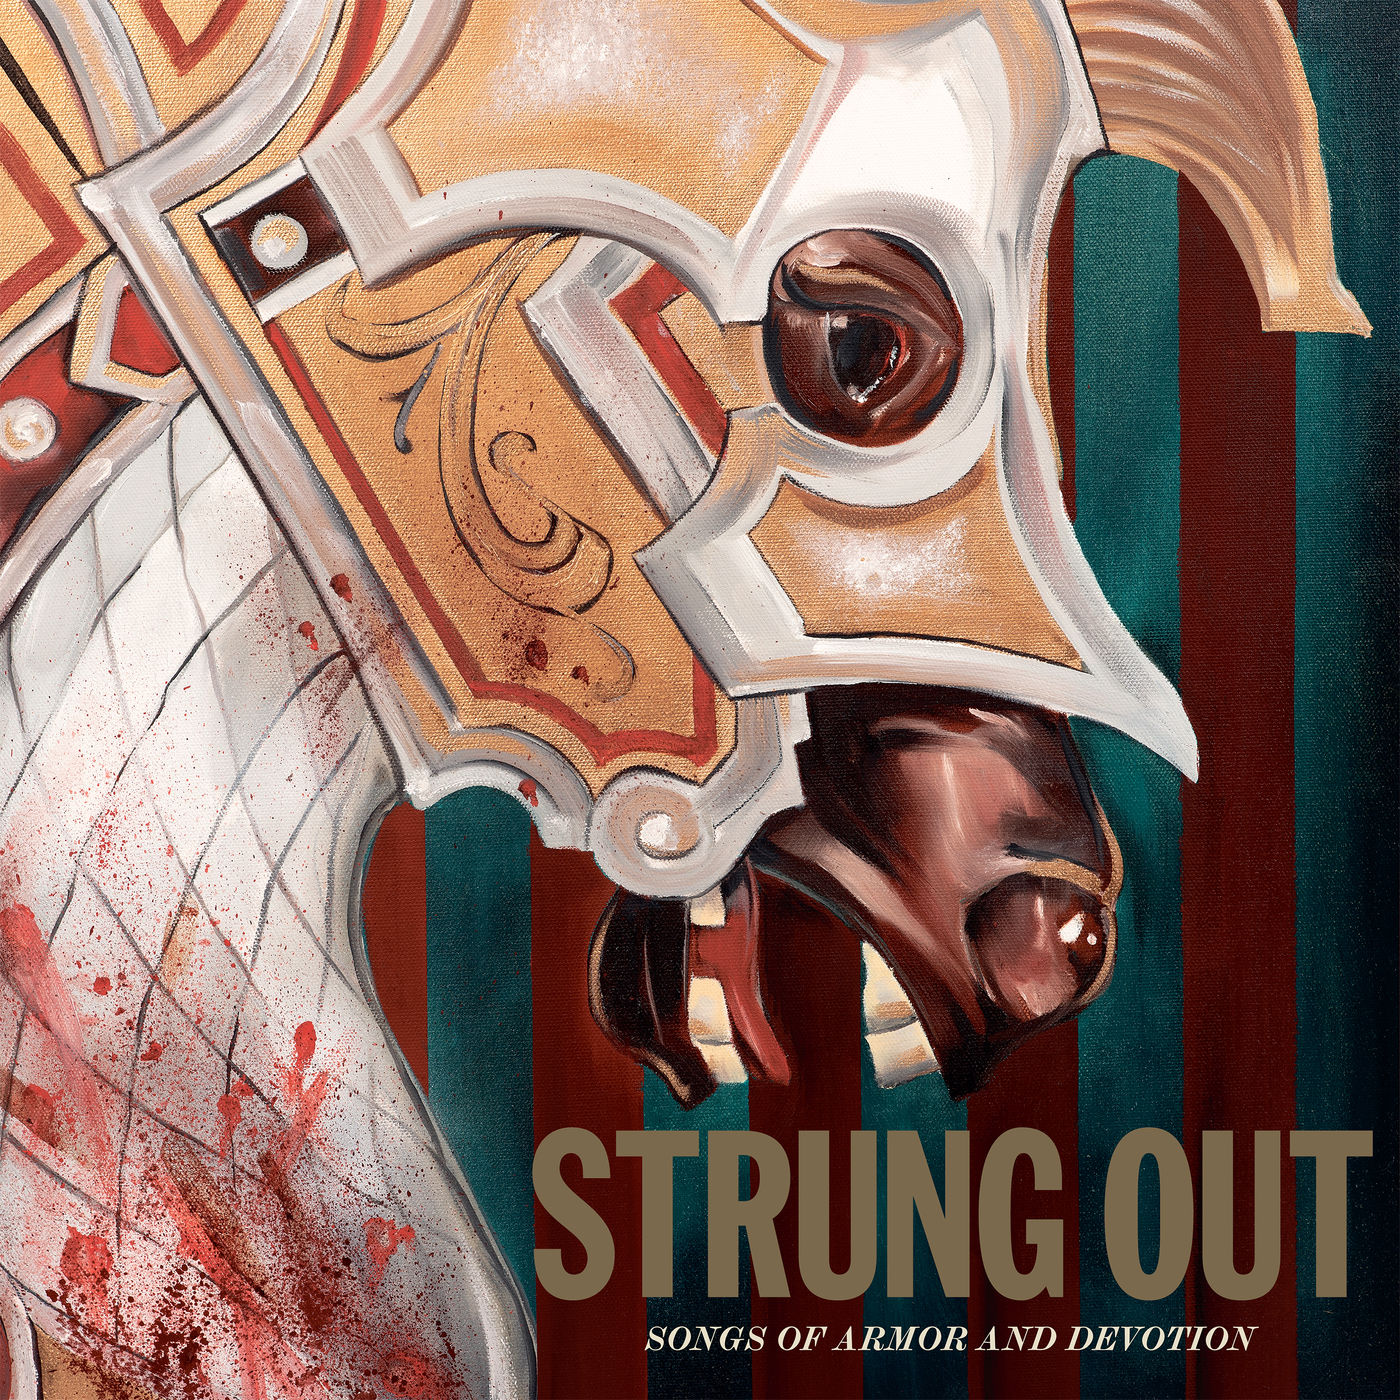 Strung Out - Songs of Armor and Devotion (2019)